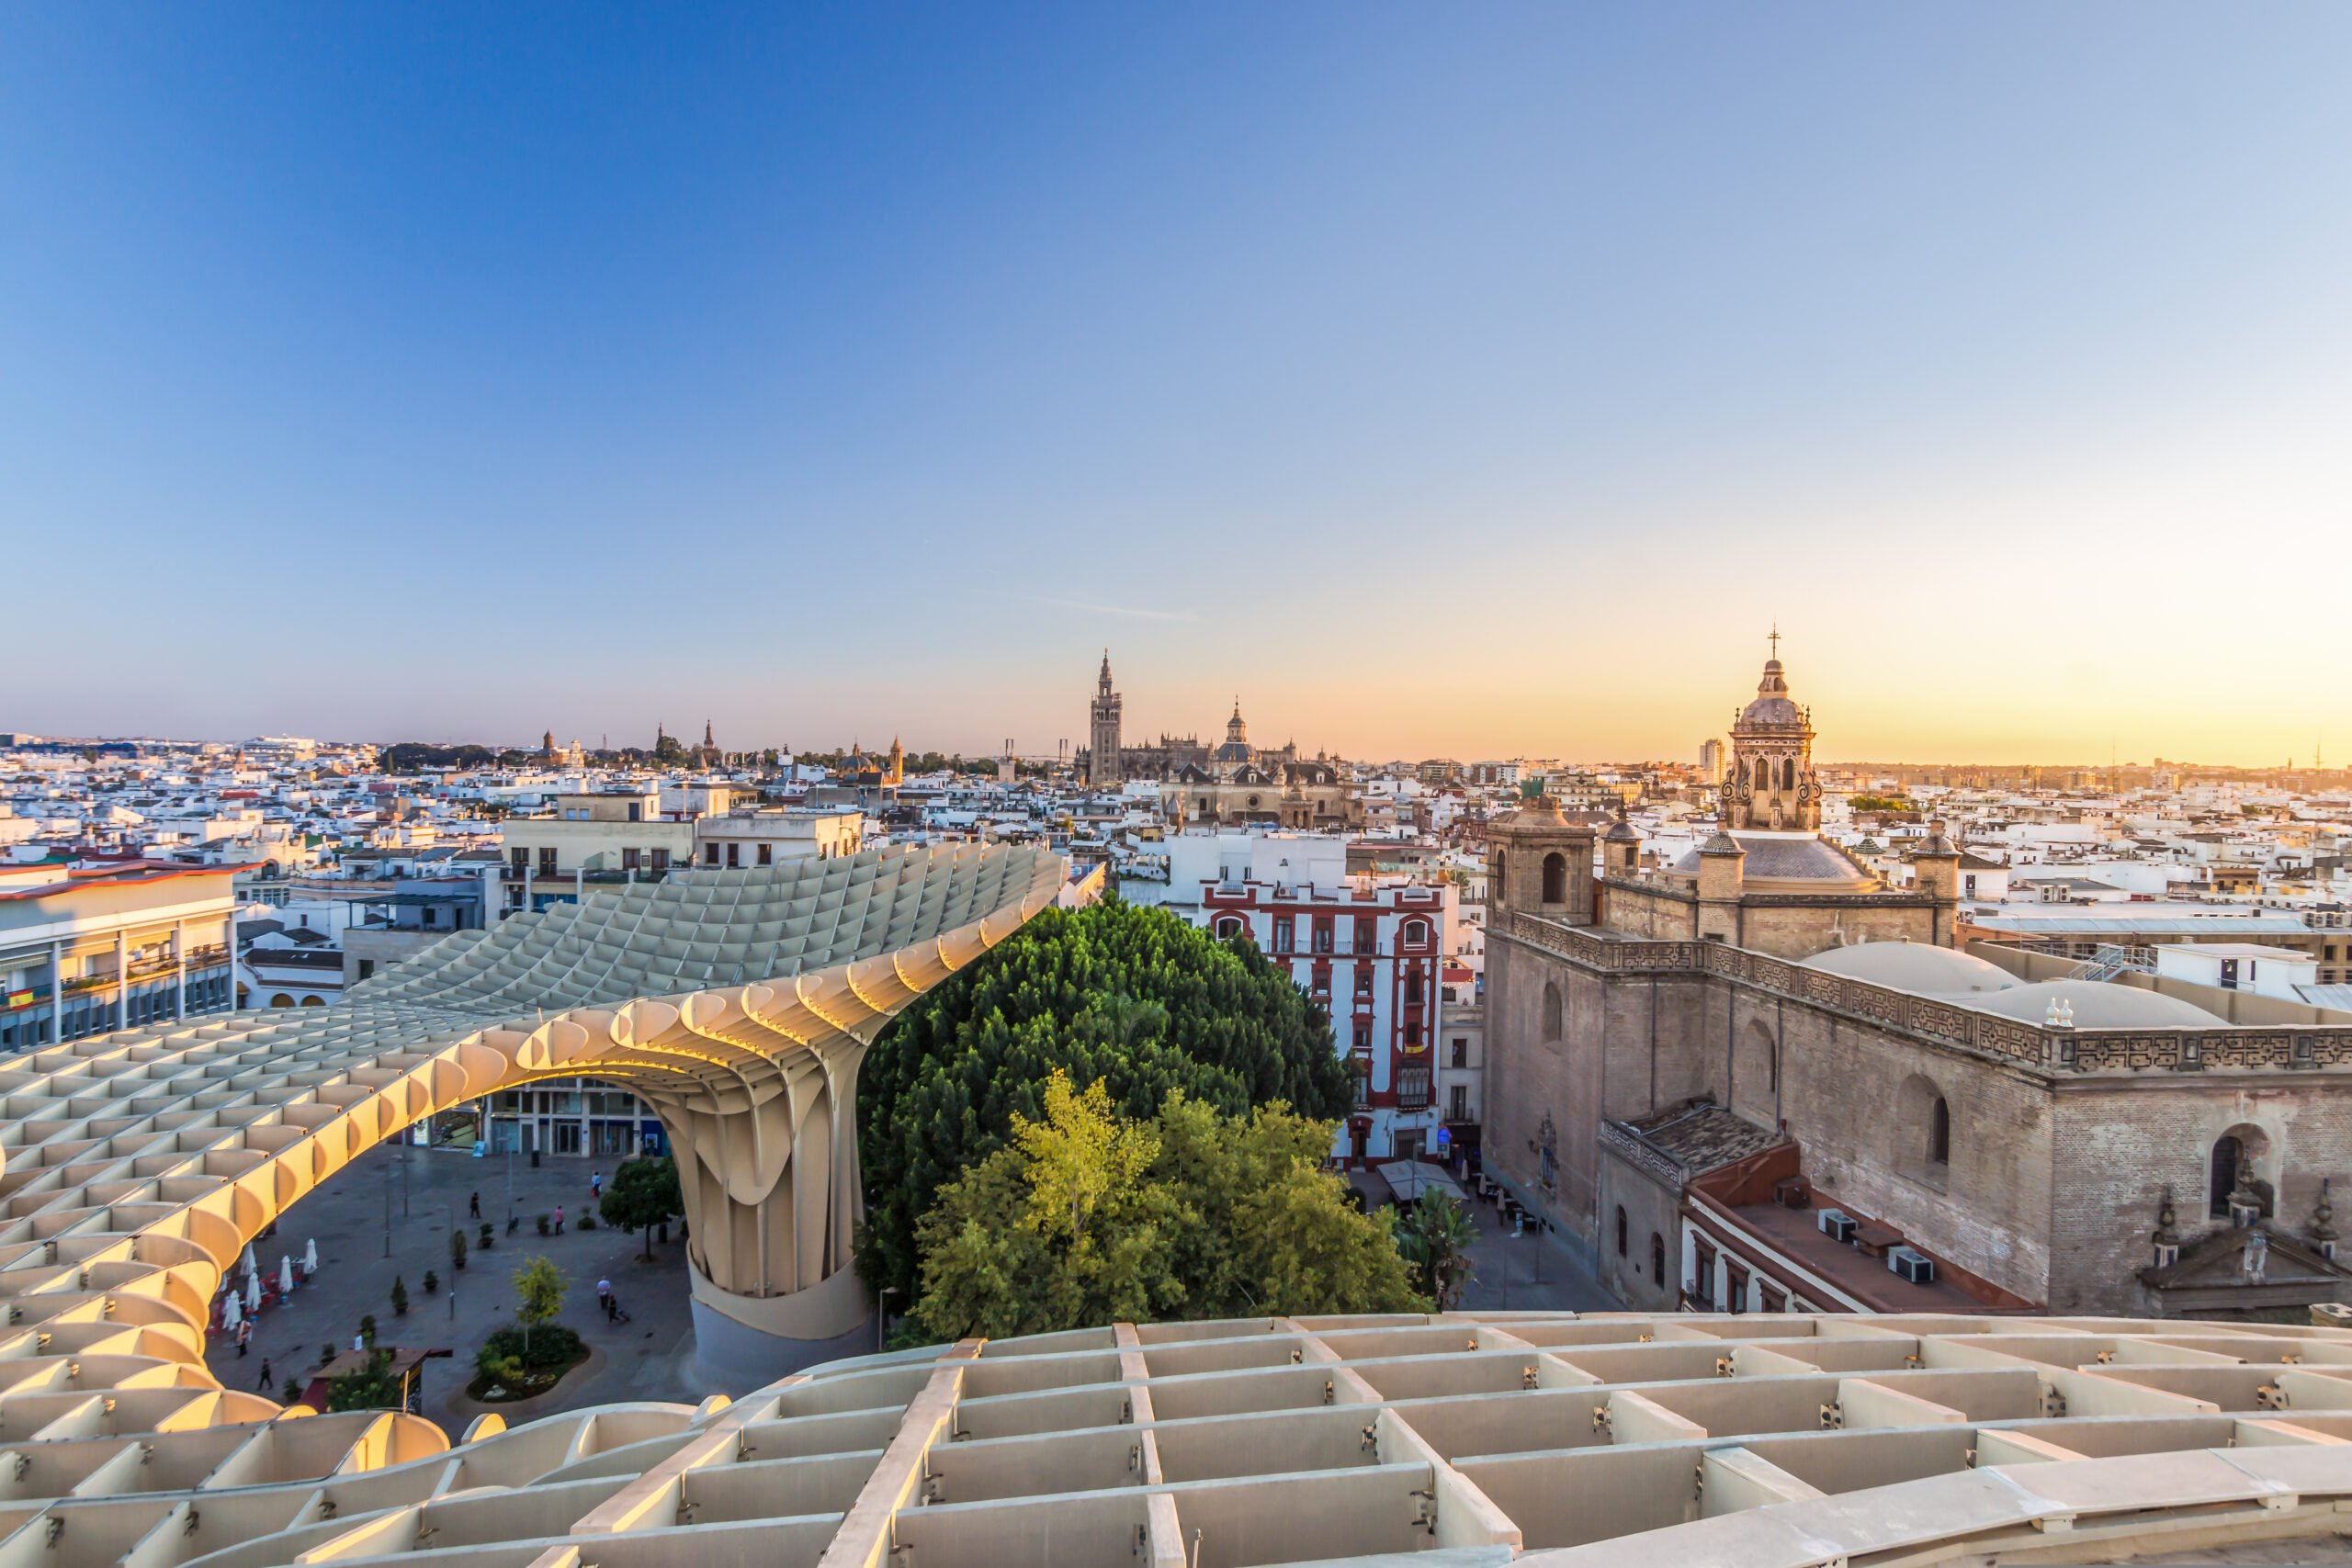 Discover The Beautiful City Of Seville On The Seville Rooftop Walking Tour